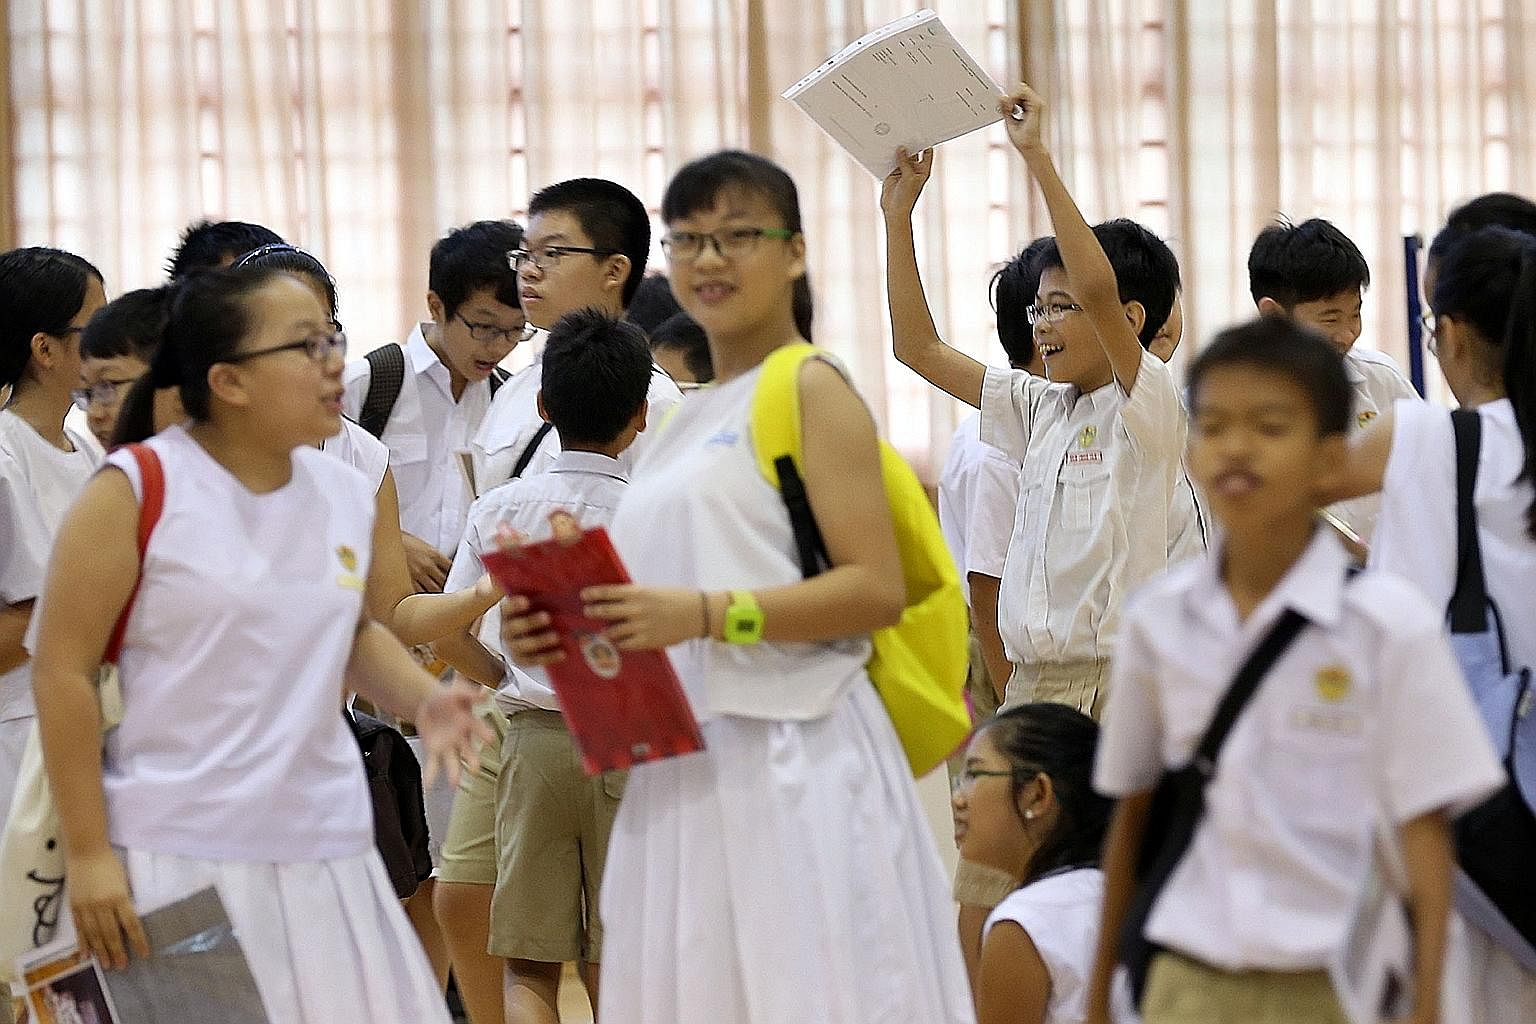 Pupils with their PSLE results. The MOE's stance on strictly adhering to cut-off points seems to go against the new direction of learning.